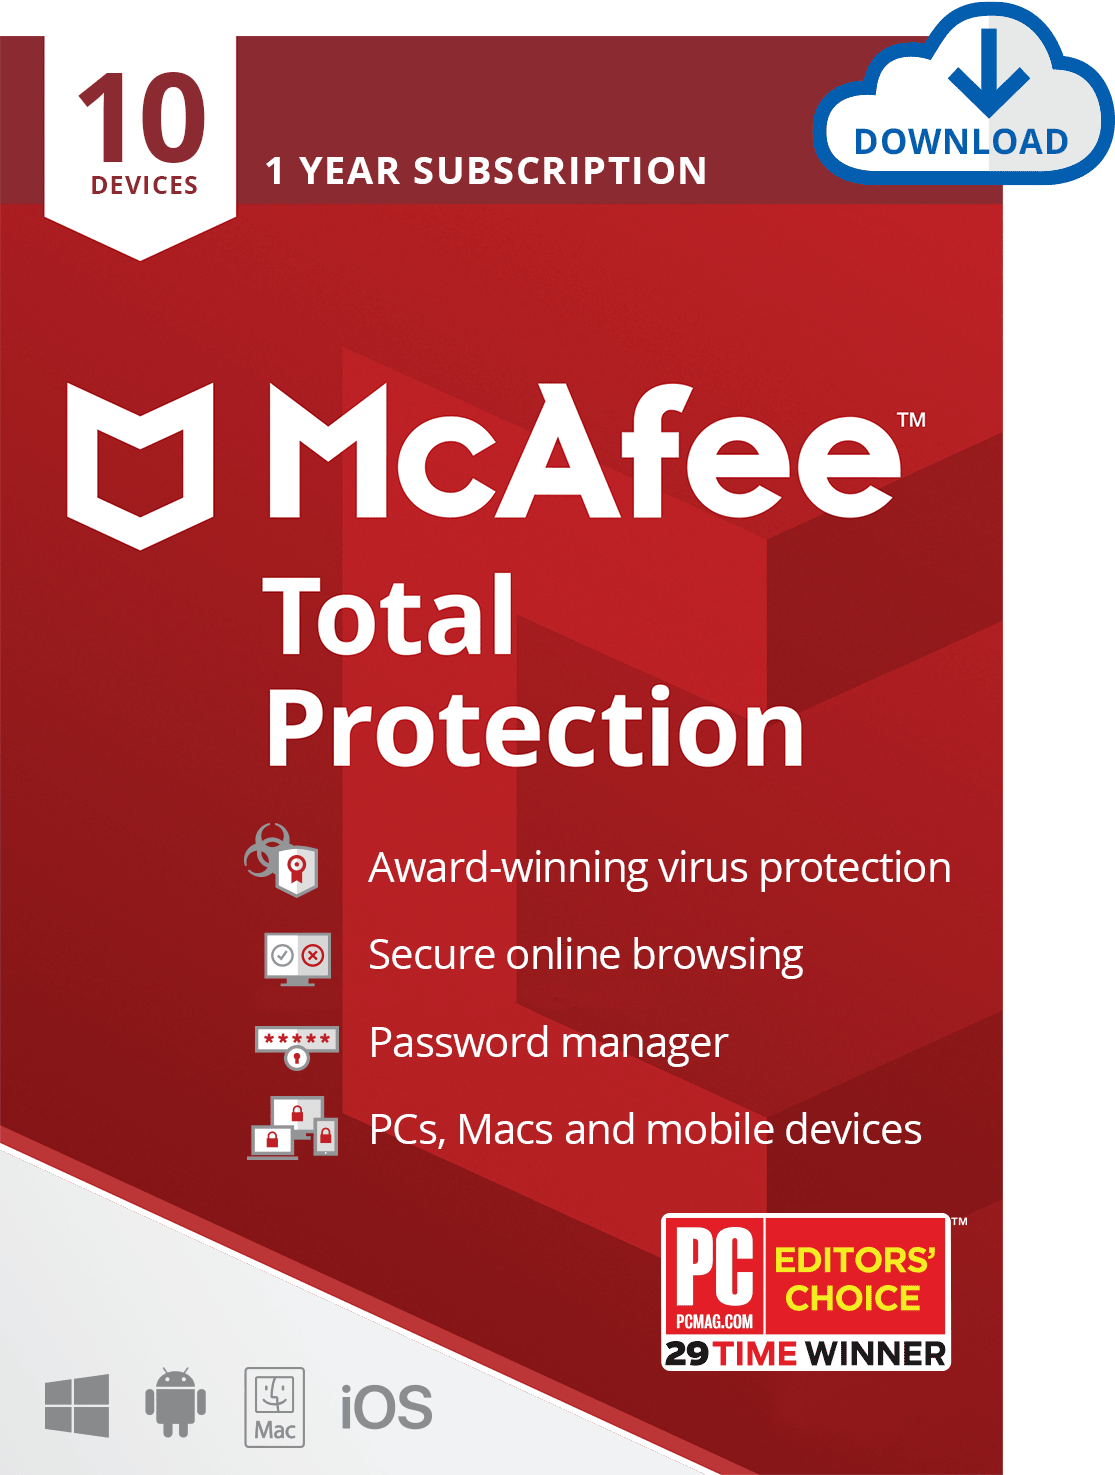 McAfee Total Protection For 10 Devices - Email Delivery